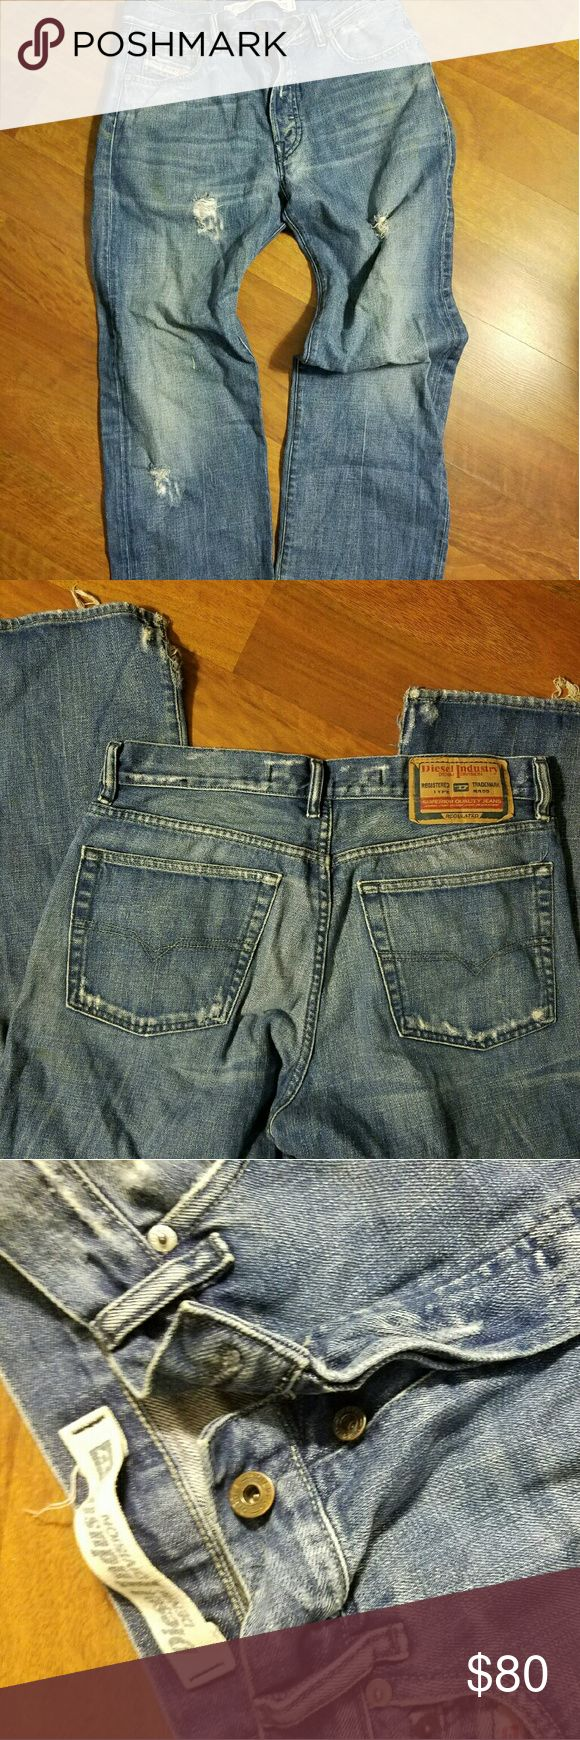 DIESEL Destroyed BUTTON FLY Jeans SIZE 33 SWEET PAIR OF JEANS! MADE IN ITALY - DIESEL BRAND SIZE 33 DESTROYED STYLE WITH BUTTON FLY Diesel Jeans Relaxed